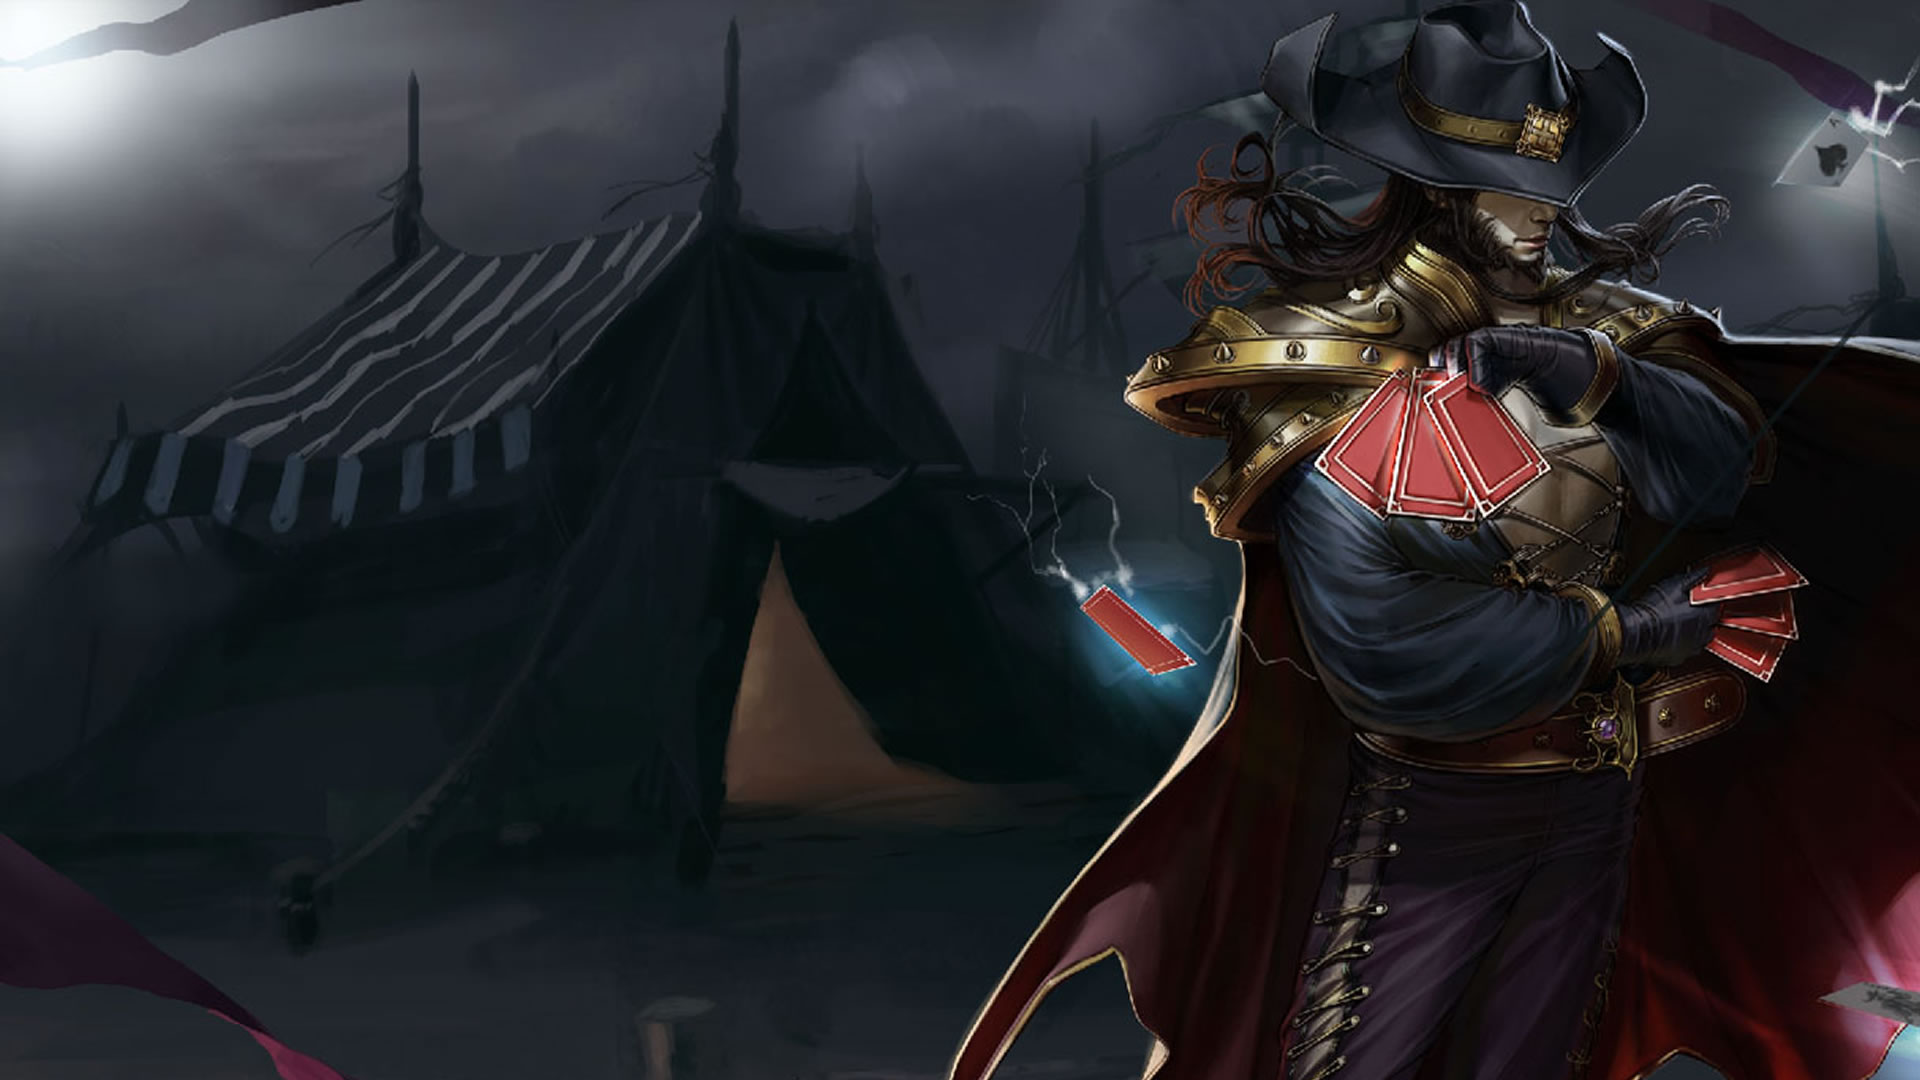 Twisted Fate Wallpapers - LeagueSplash